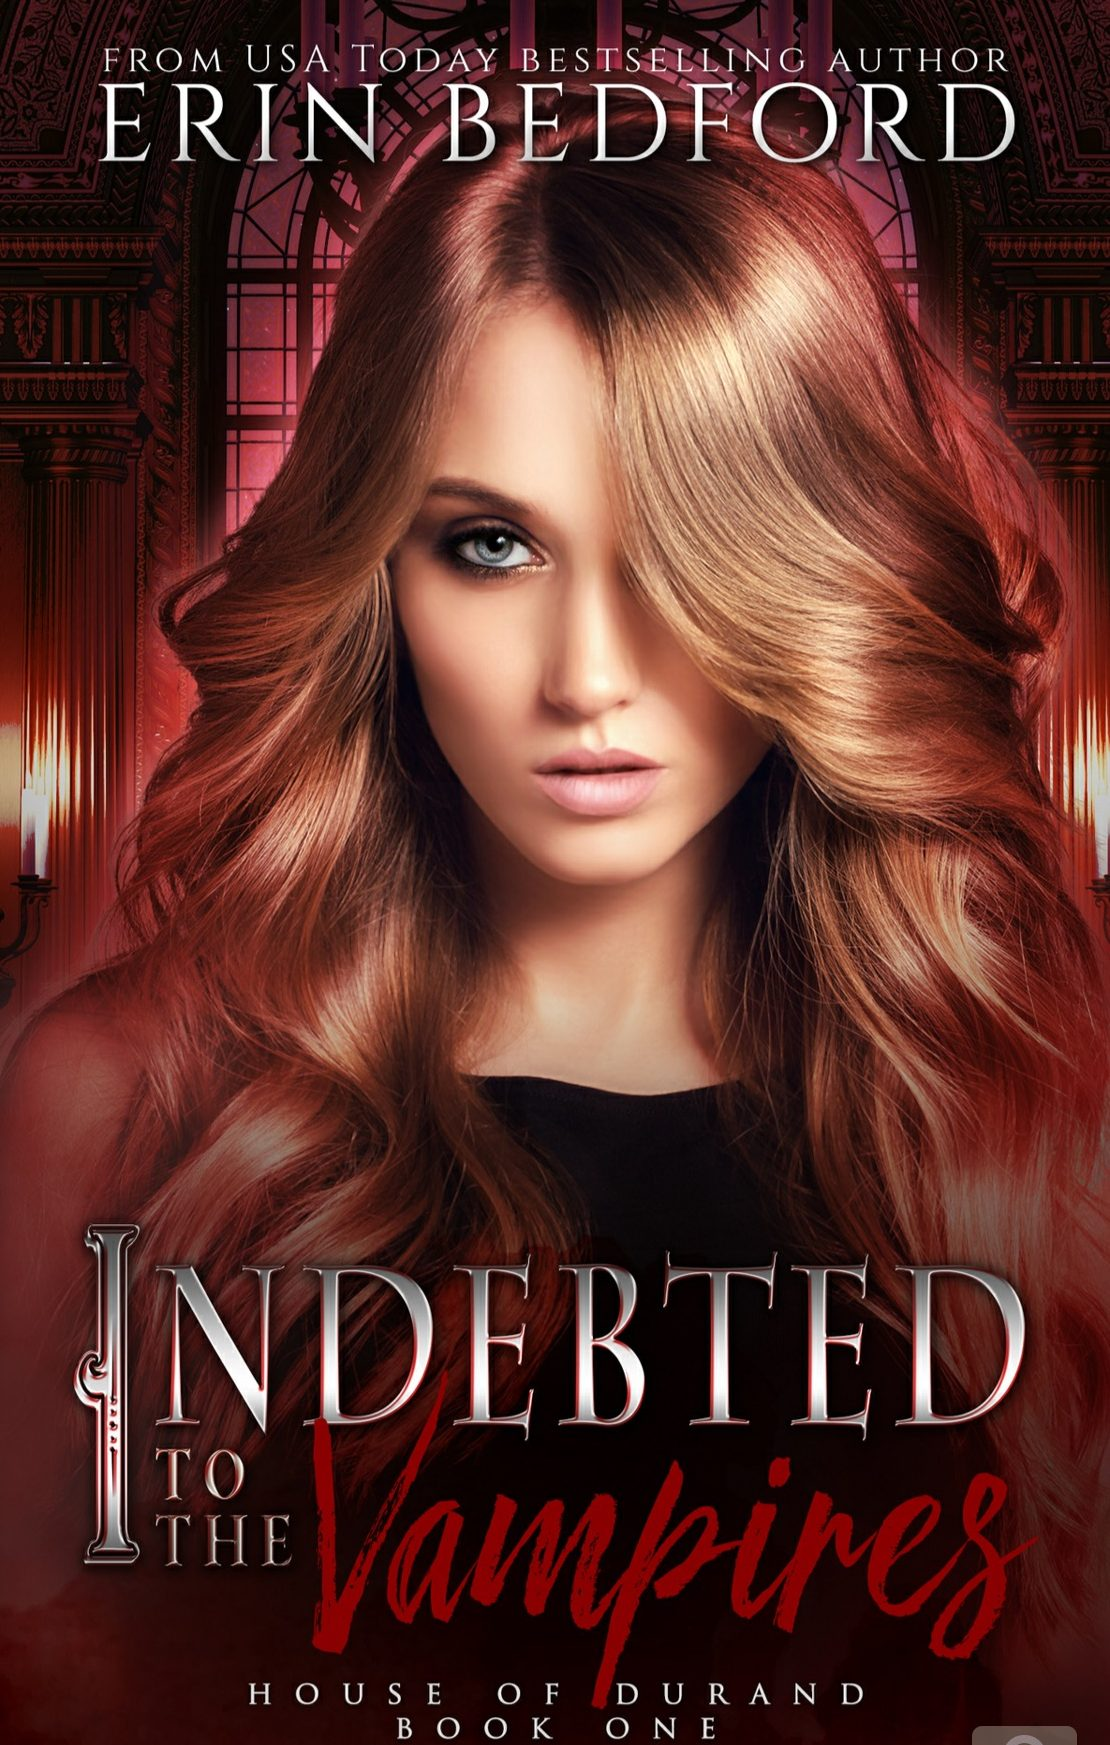 Indebted to Vampires by Erin Bedford - A Book Review #ReverseHarem #WhyChoose #RH #Vampires #Goodread #Fun